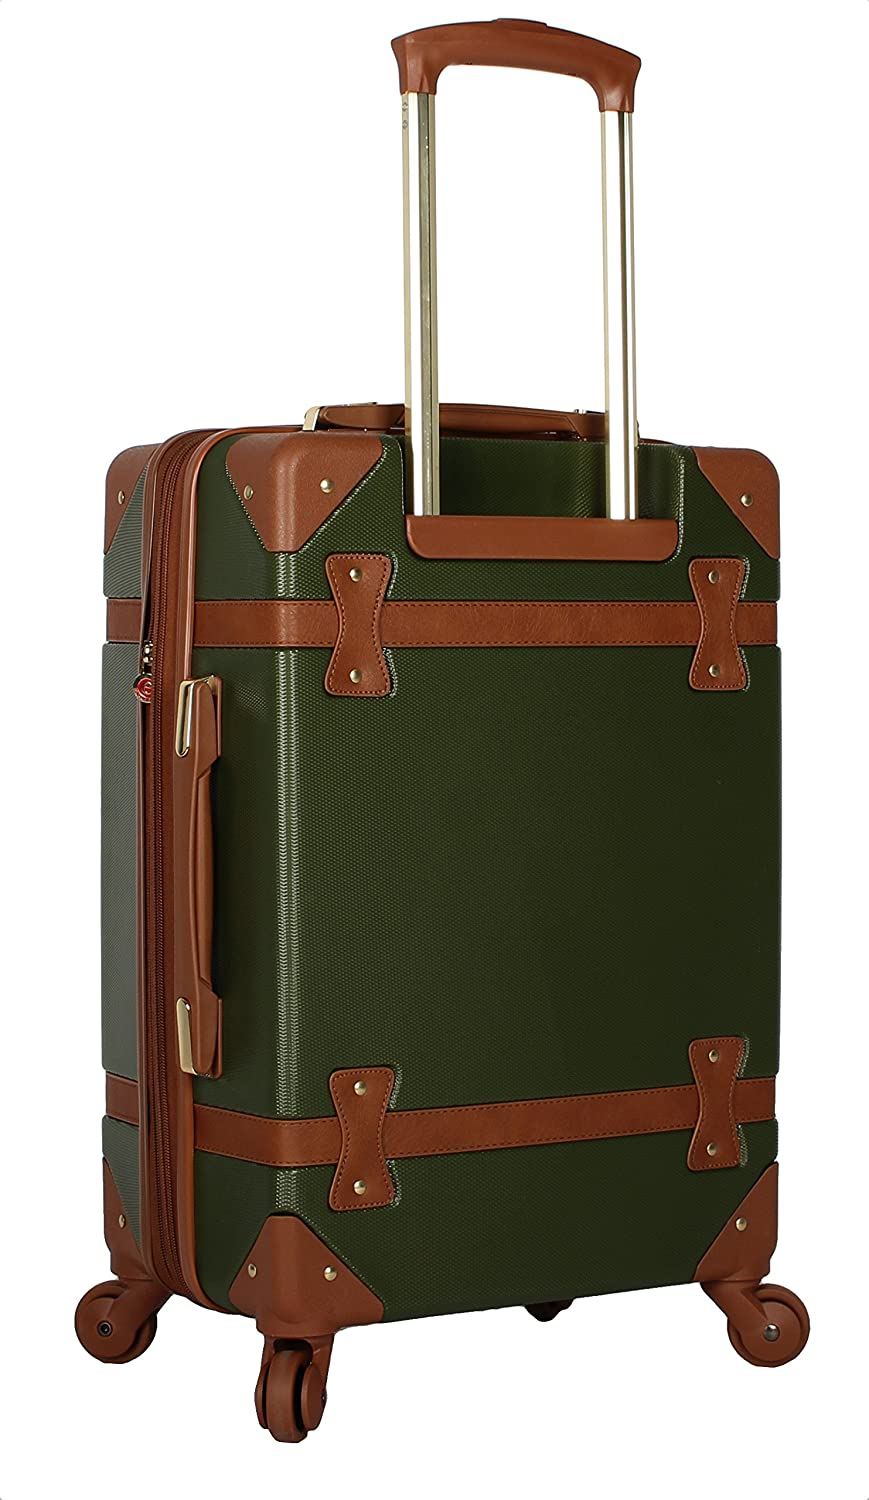 Rosetti Luggage Carry On Expandable Hardside Suitcase With Spinner Wheels